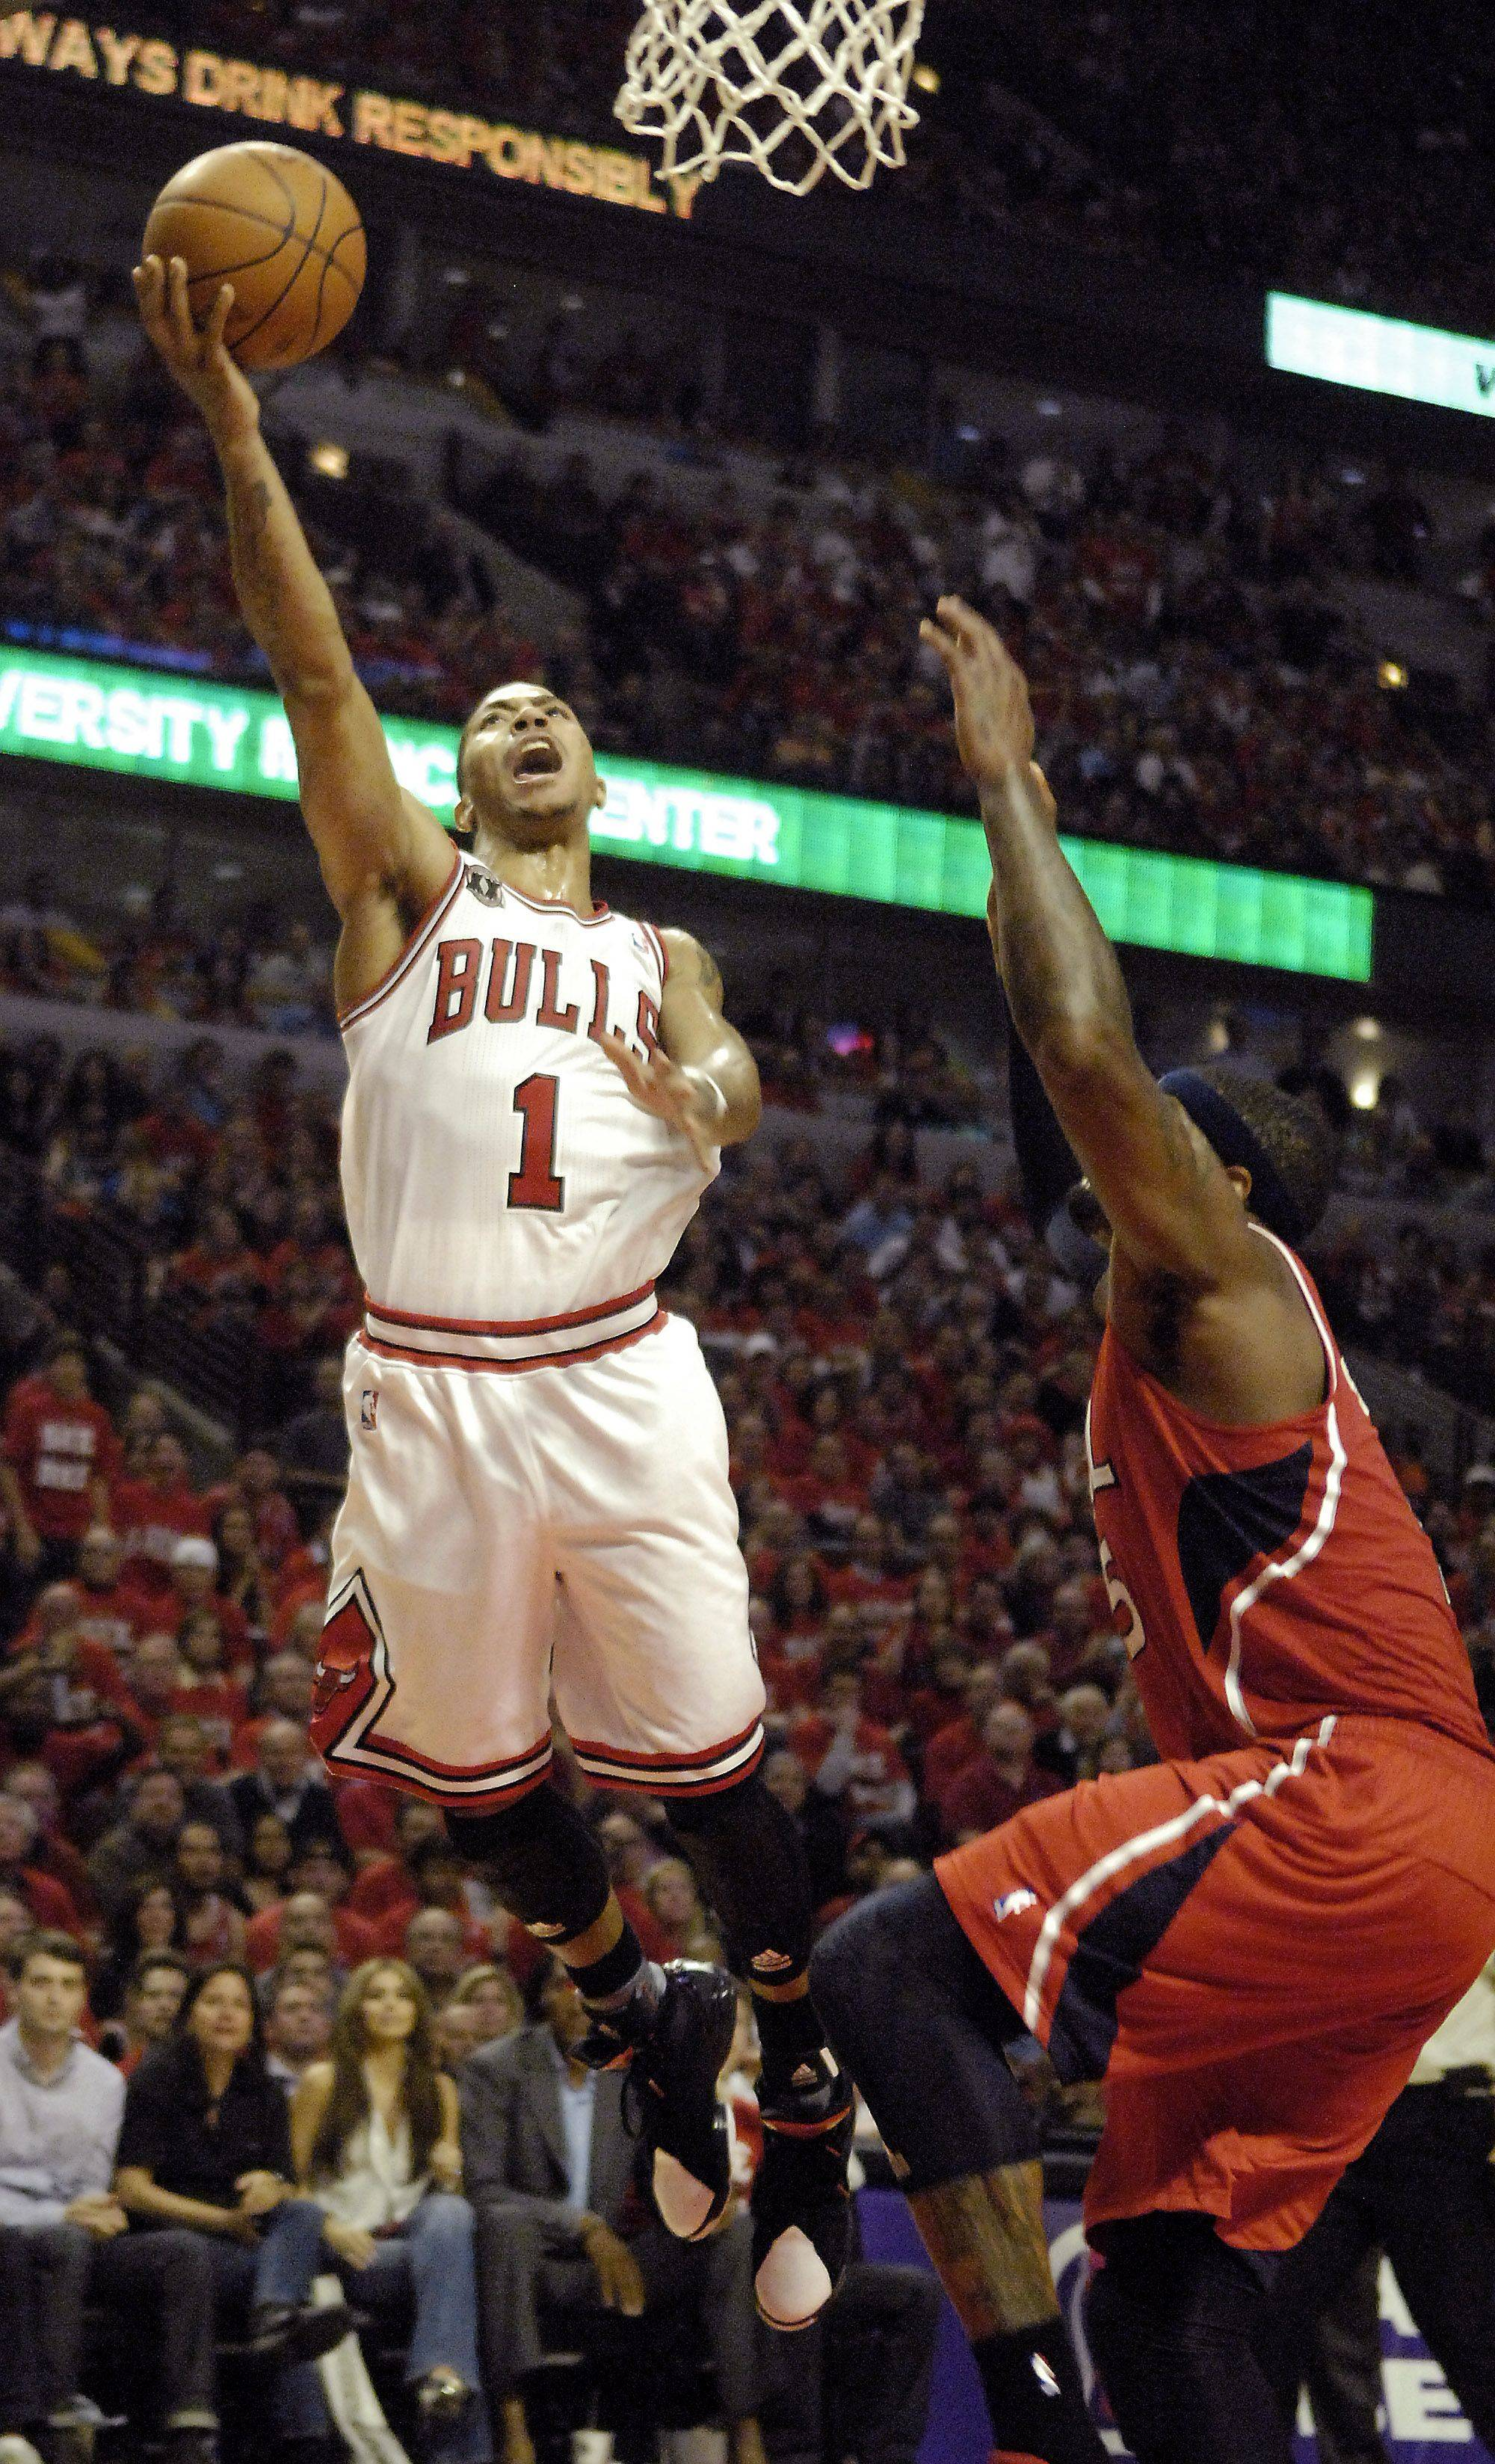 Chicago Bulls' Derrick Rose drives to the hoop and lays it up over Atlanta Hawks' Josh Smith in game 5 of the NBA Eastern Conference semifinals.